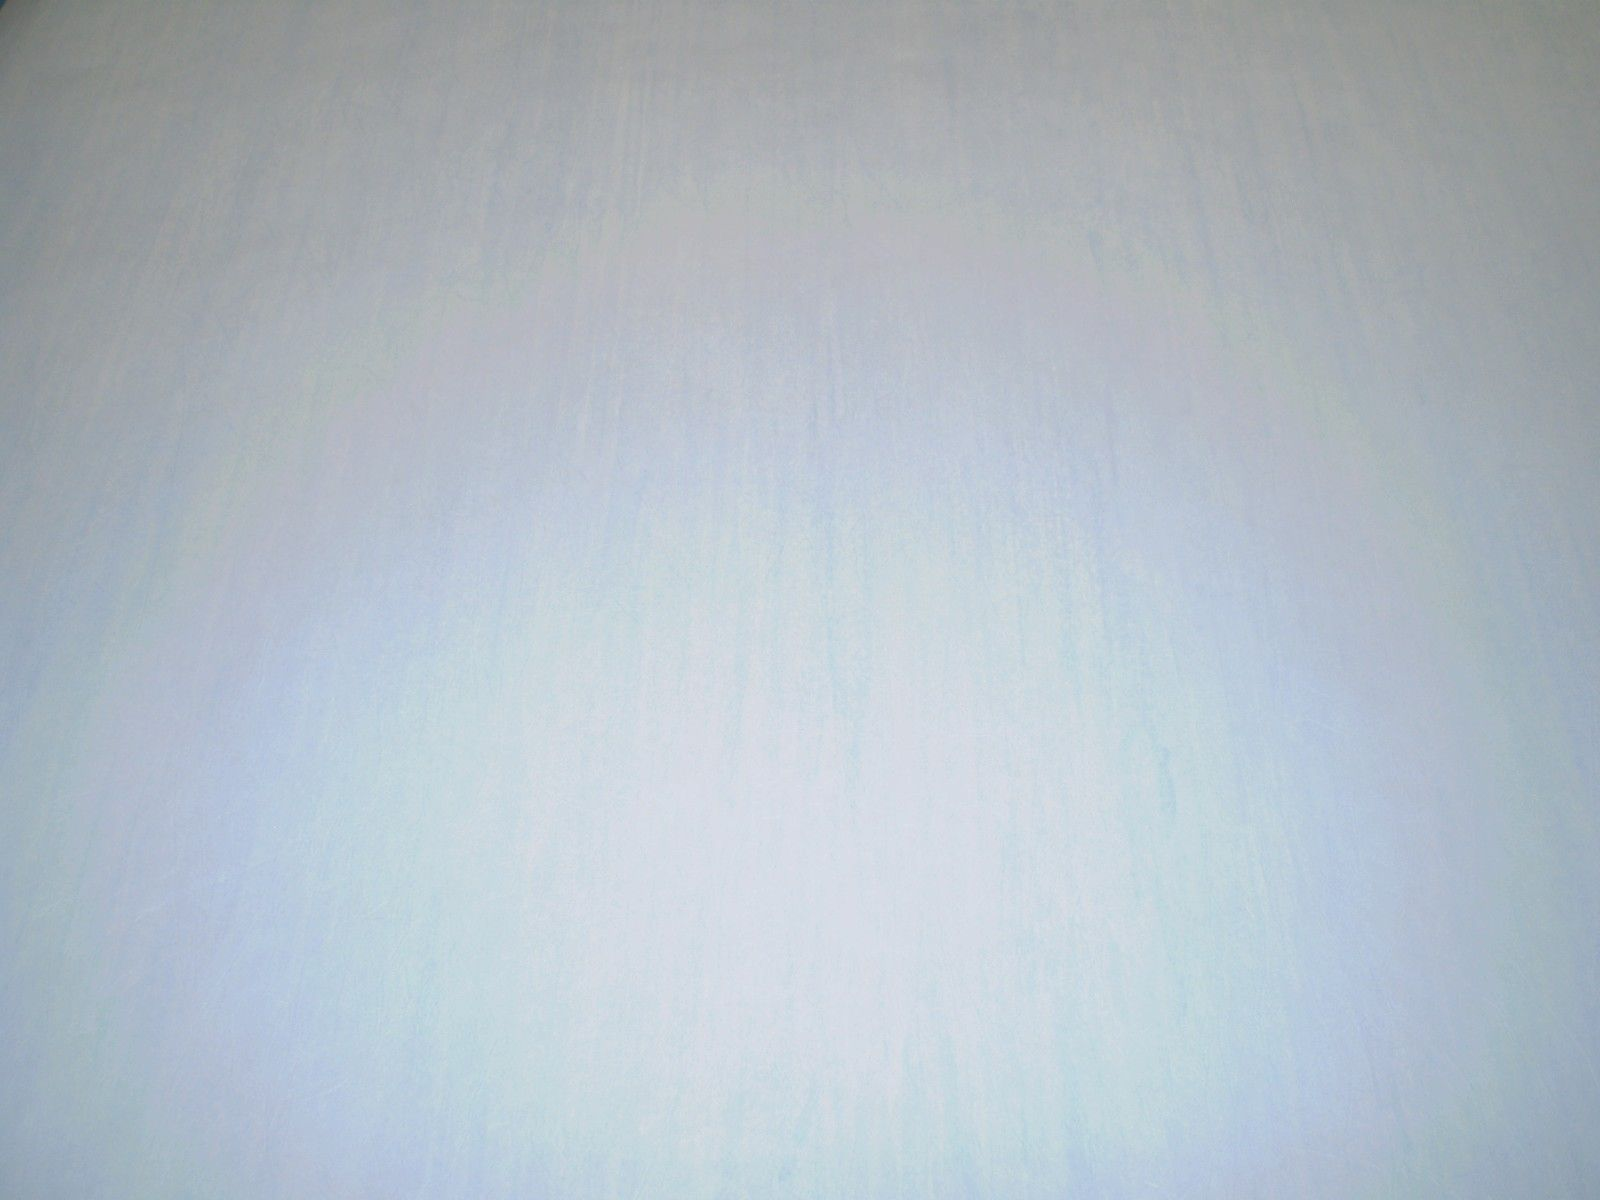 Textured Light Blue Wallpaper by International Pattern RKB9173 1600x1200